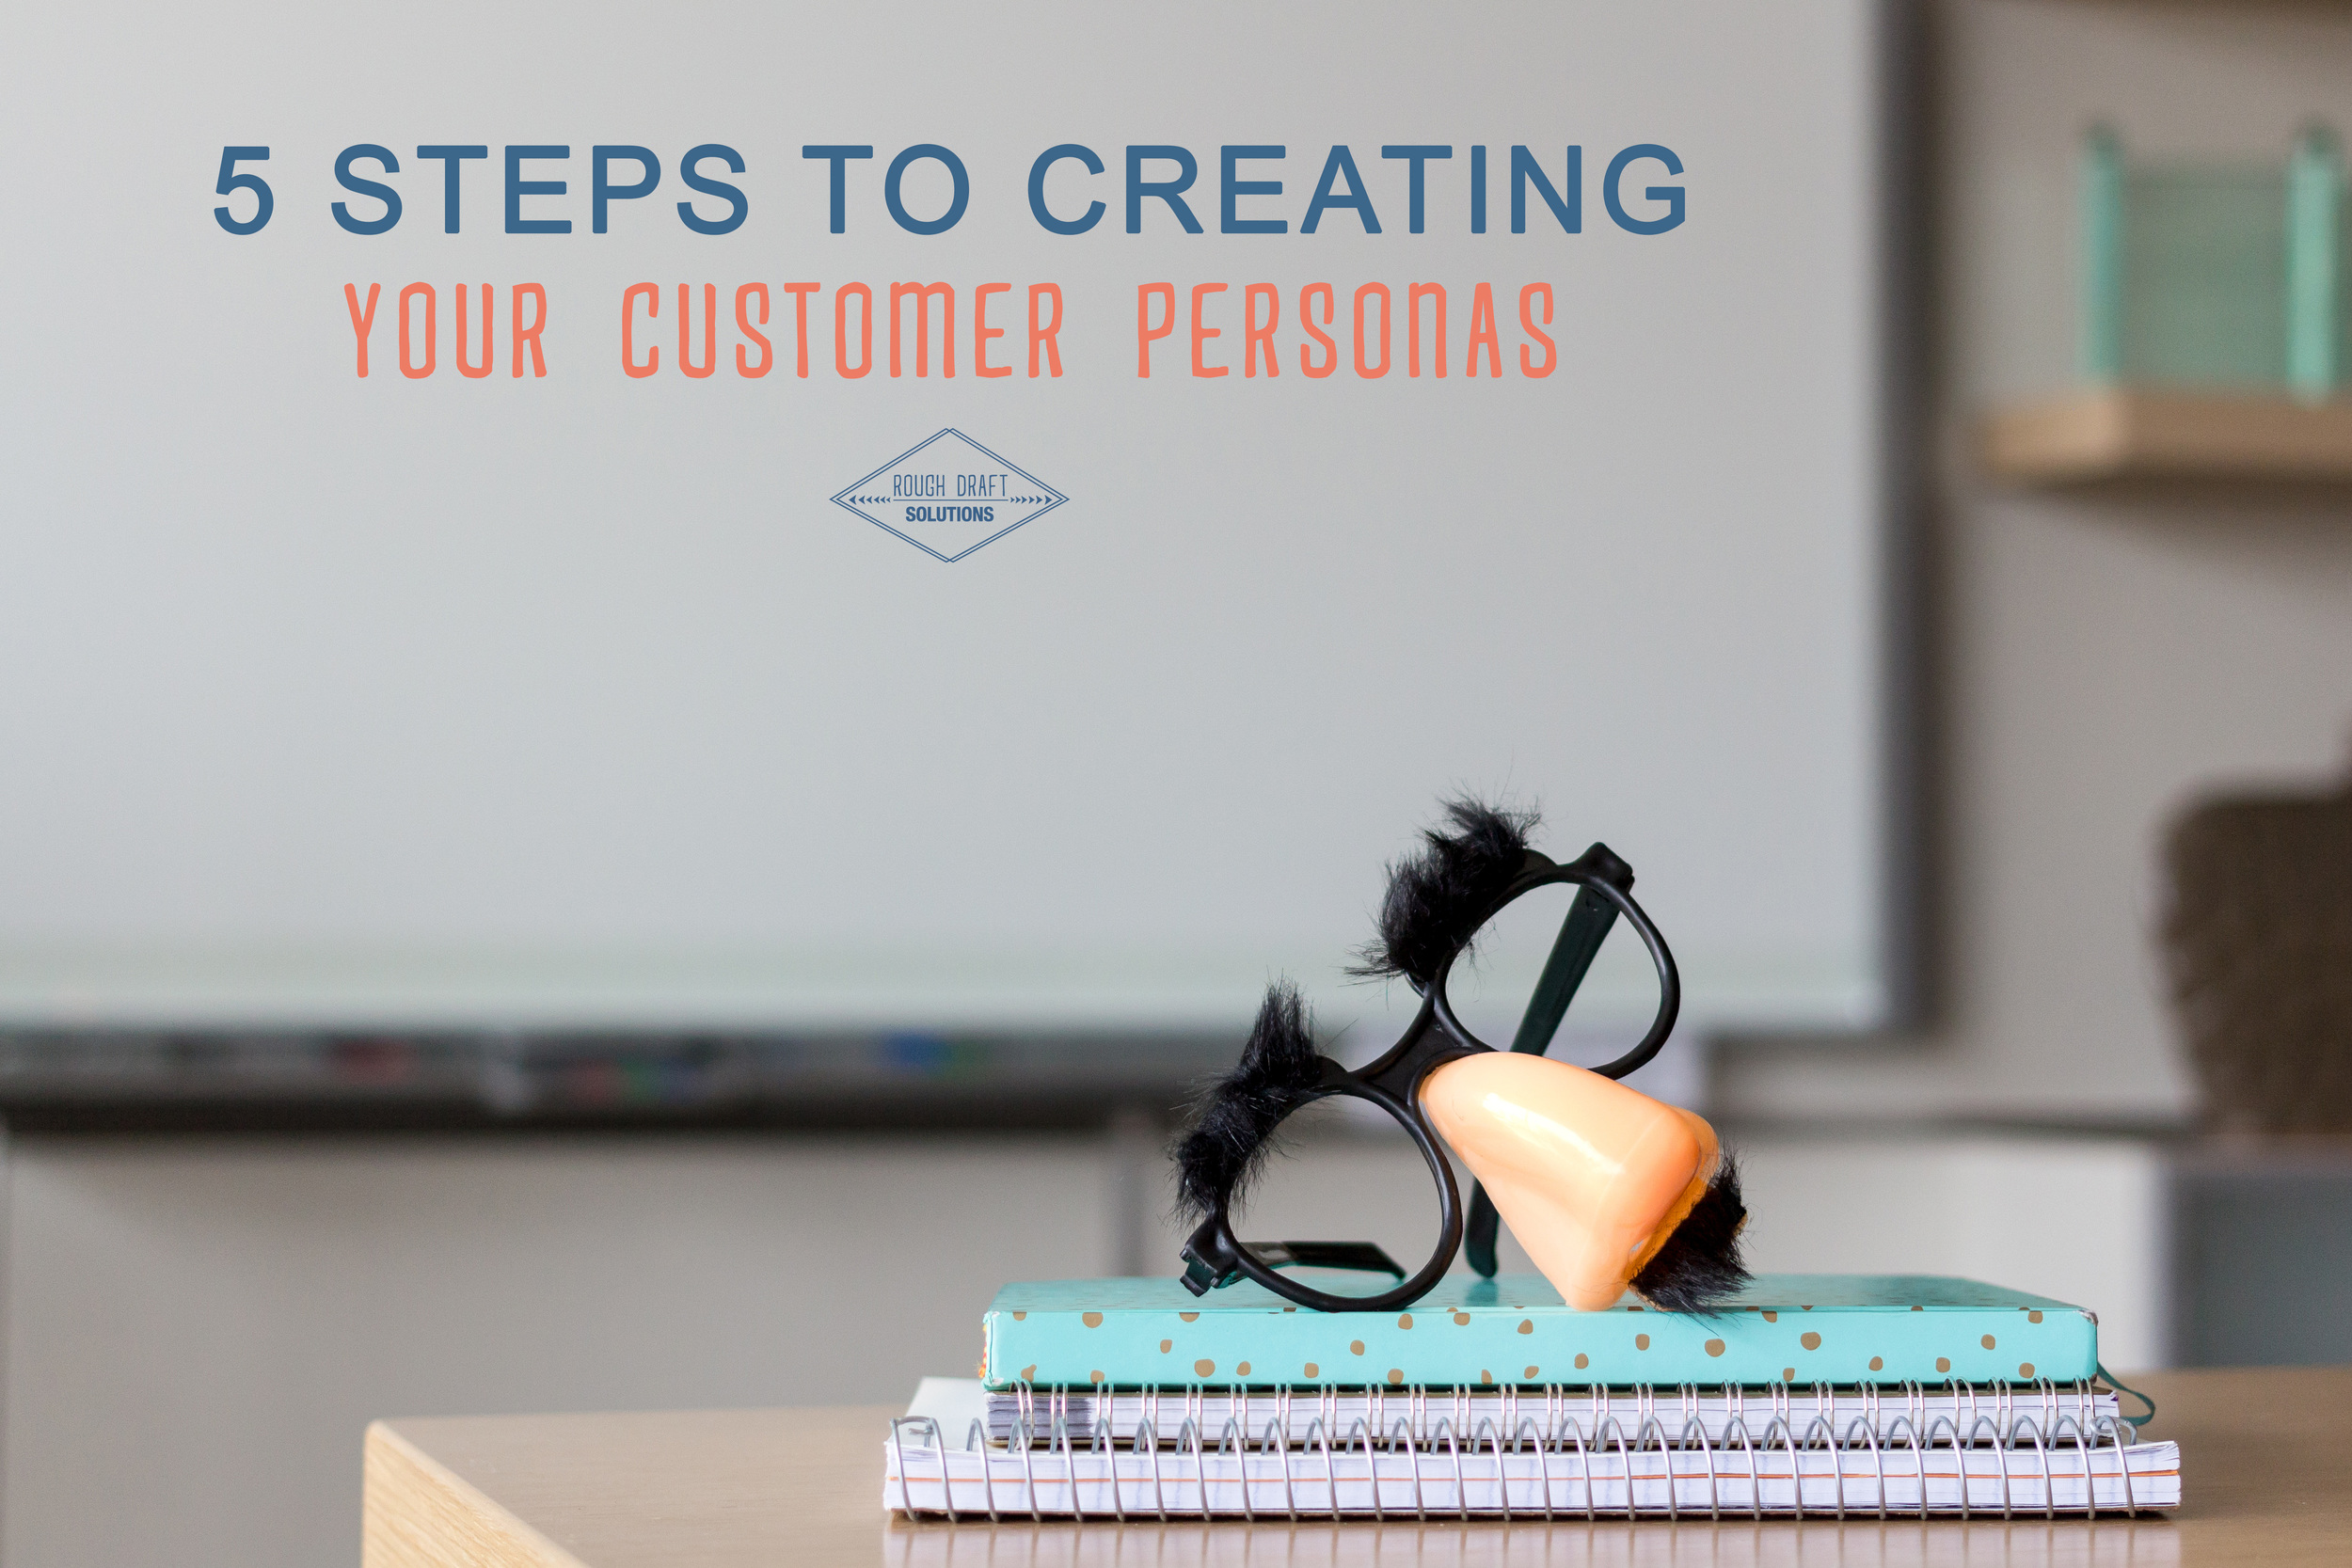 5 Steps to Creating Your Customer Personas